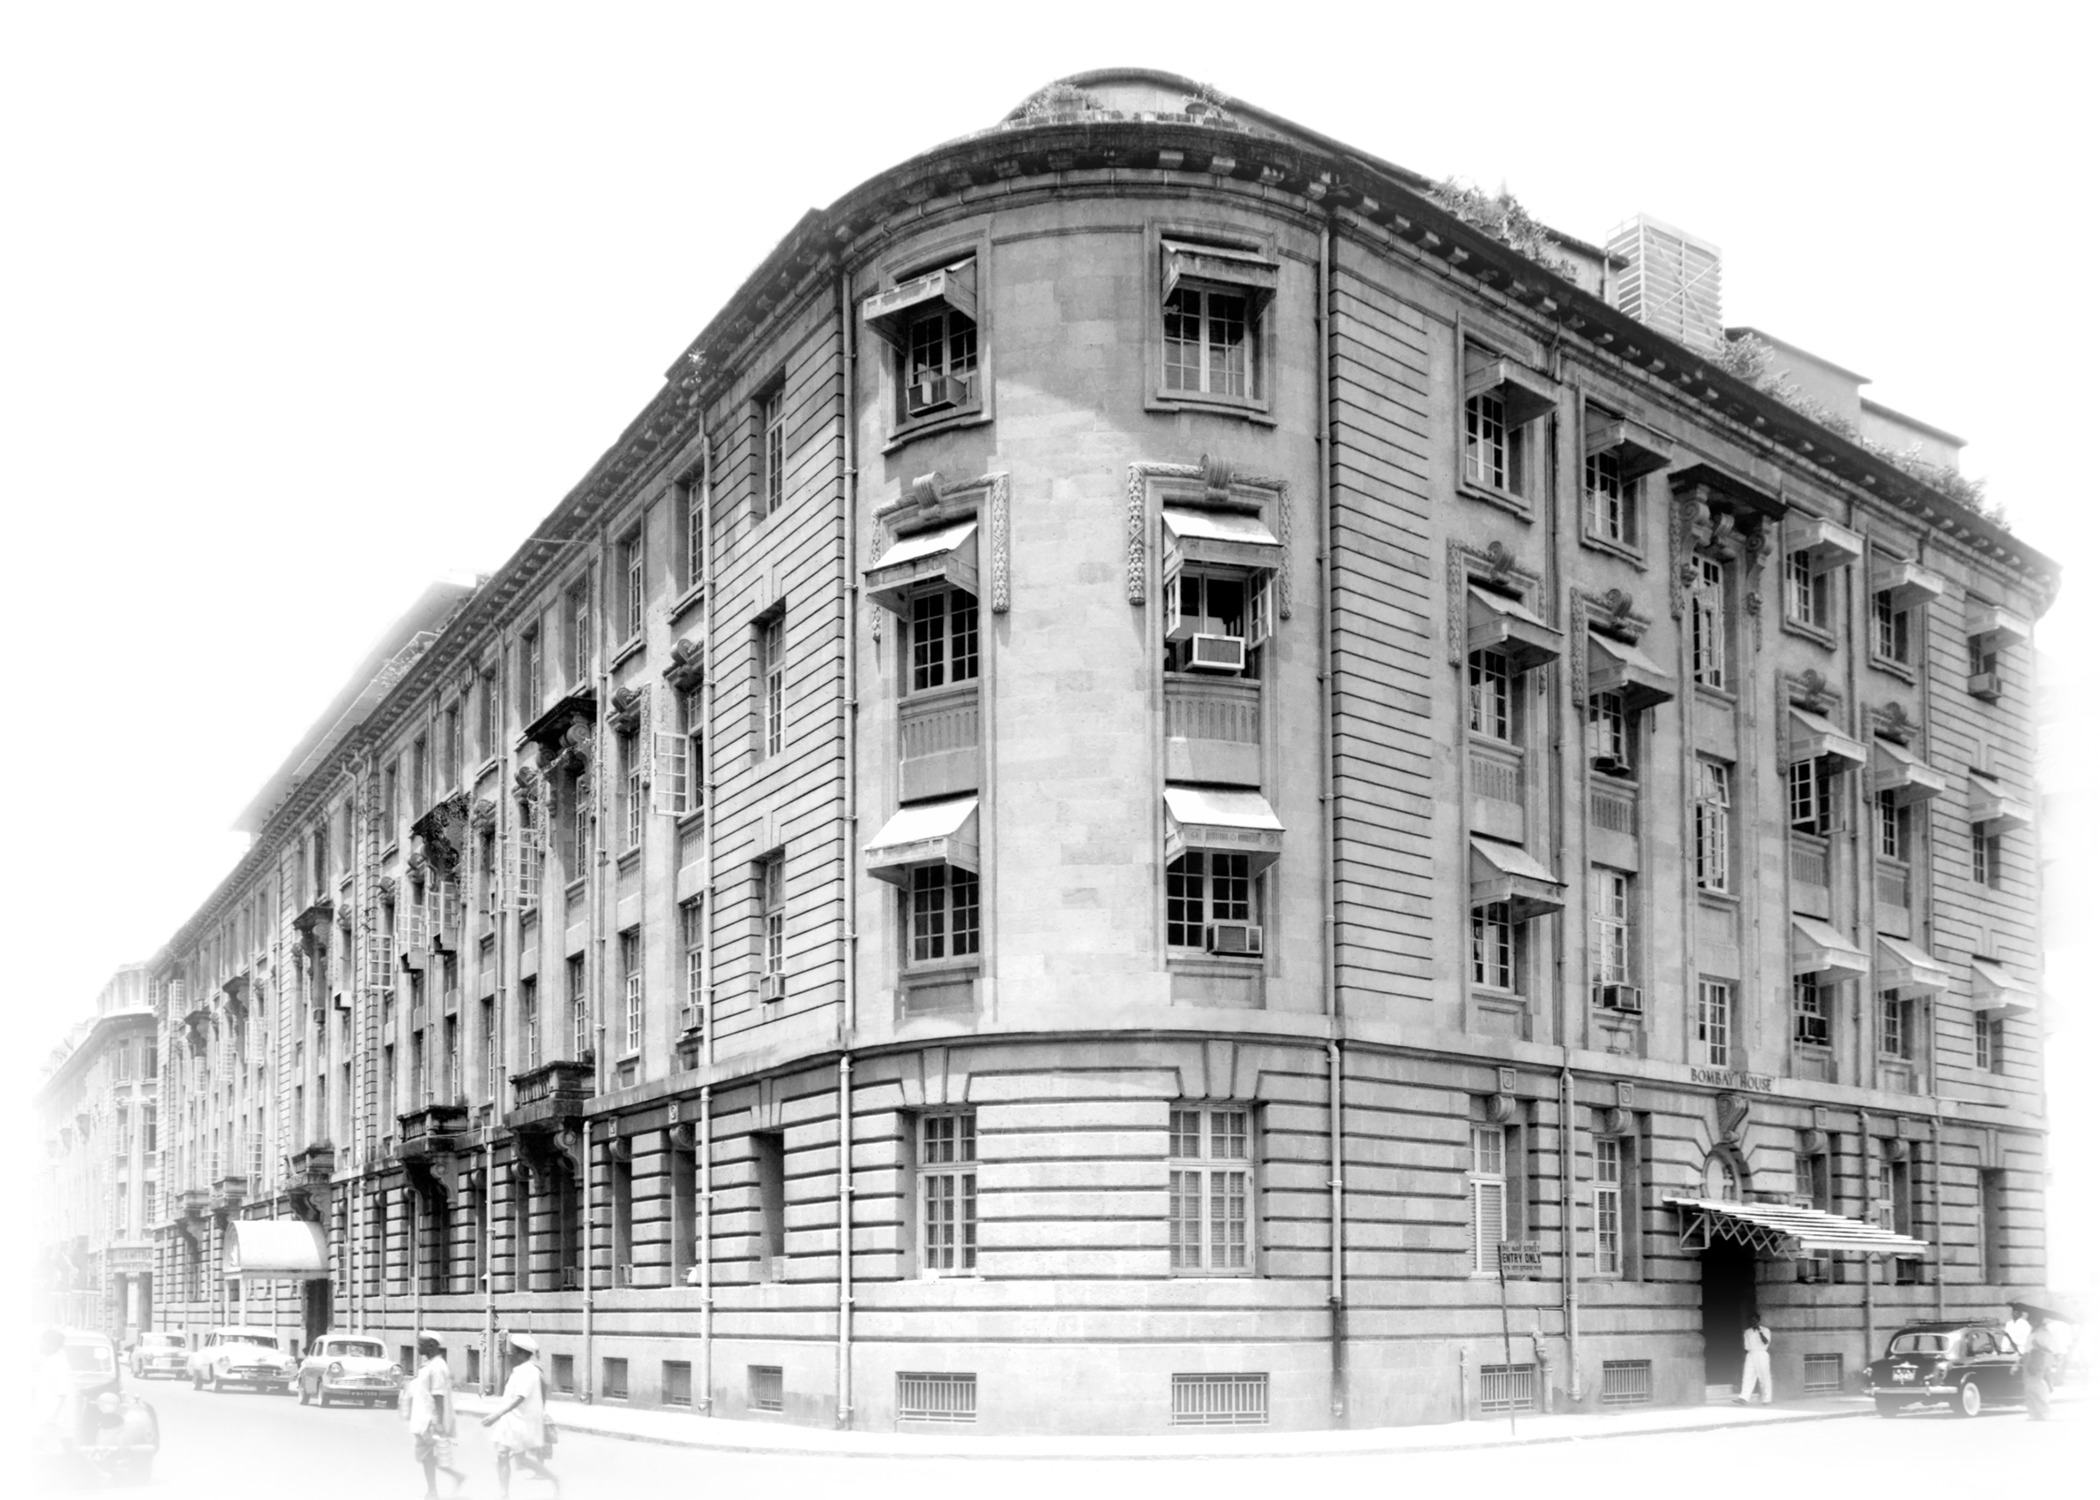 Bombay House serves as the head office of the Tata Group. Courtesy: Tata Central Archives